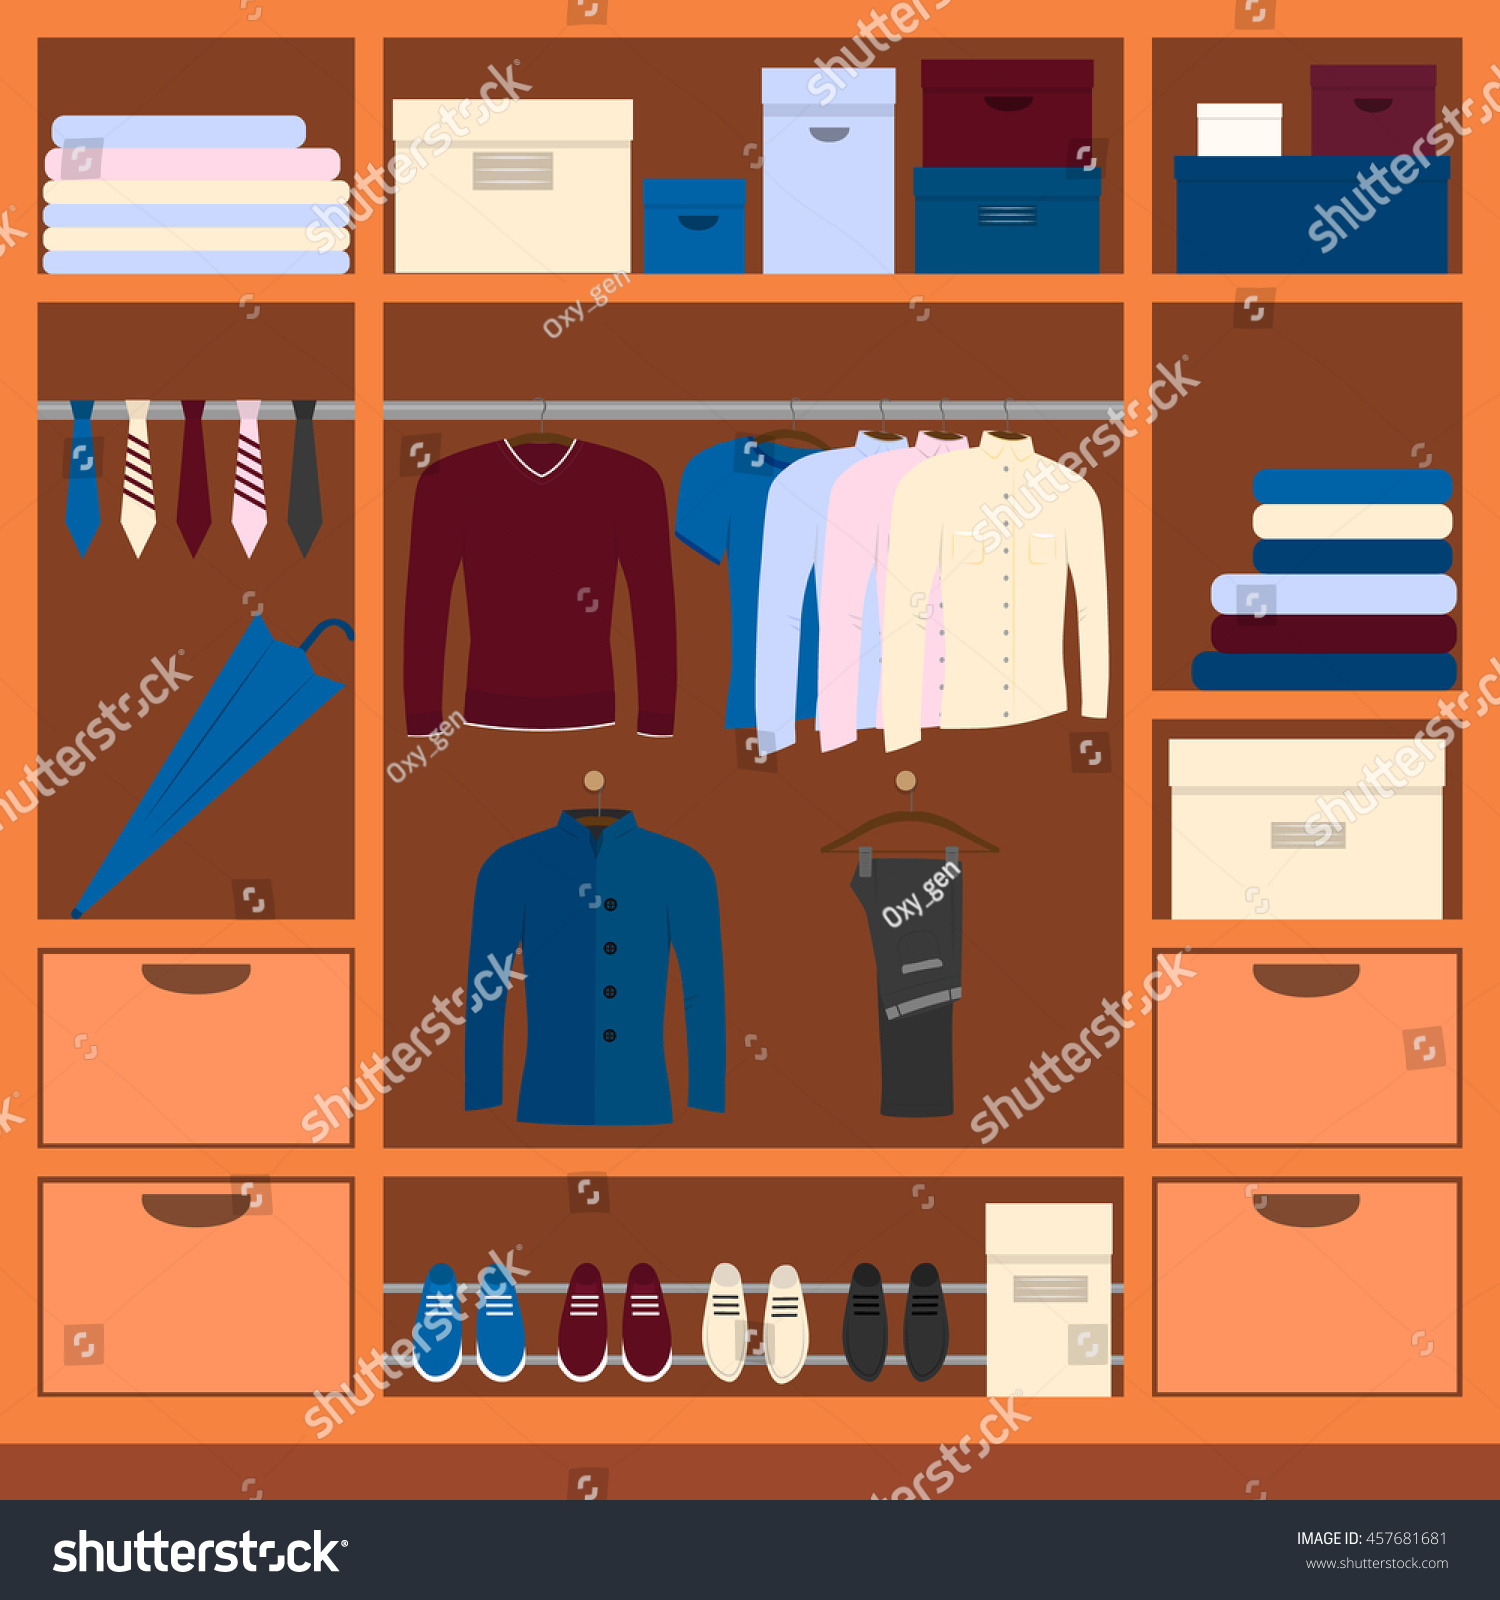 Men`s Wardrobe Space Vector Illustration With Clothing, Shoes And  Accessories. Closet For